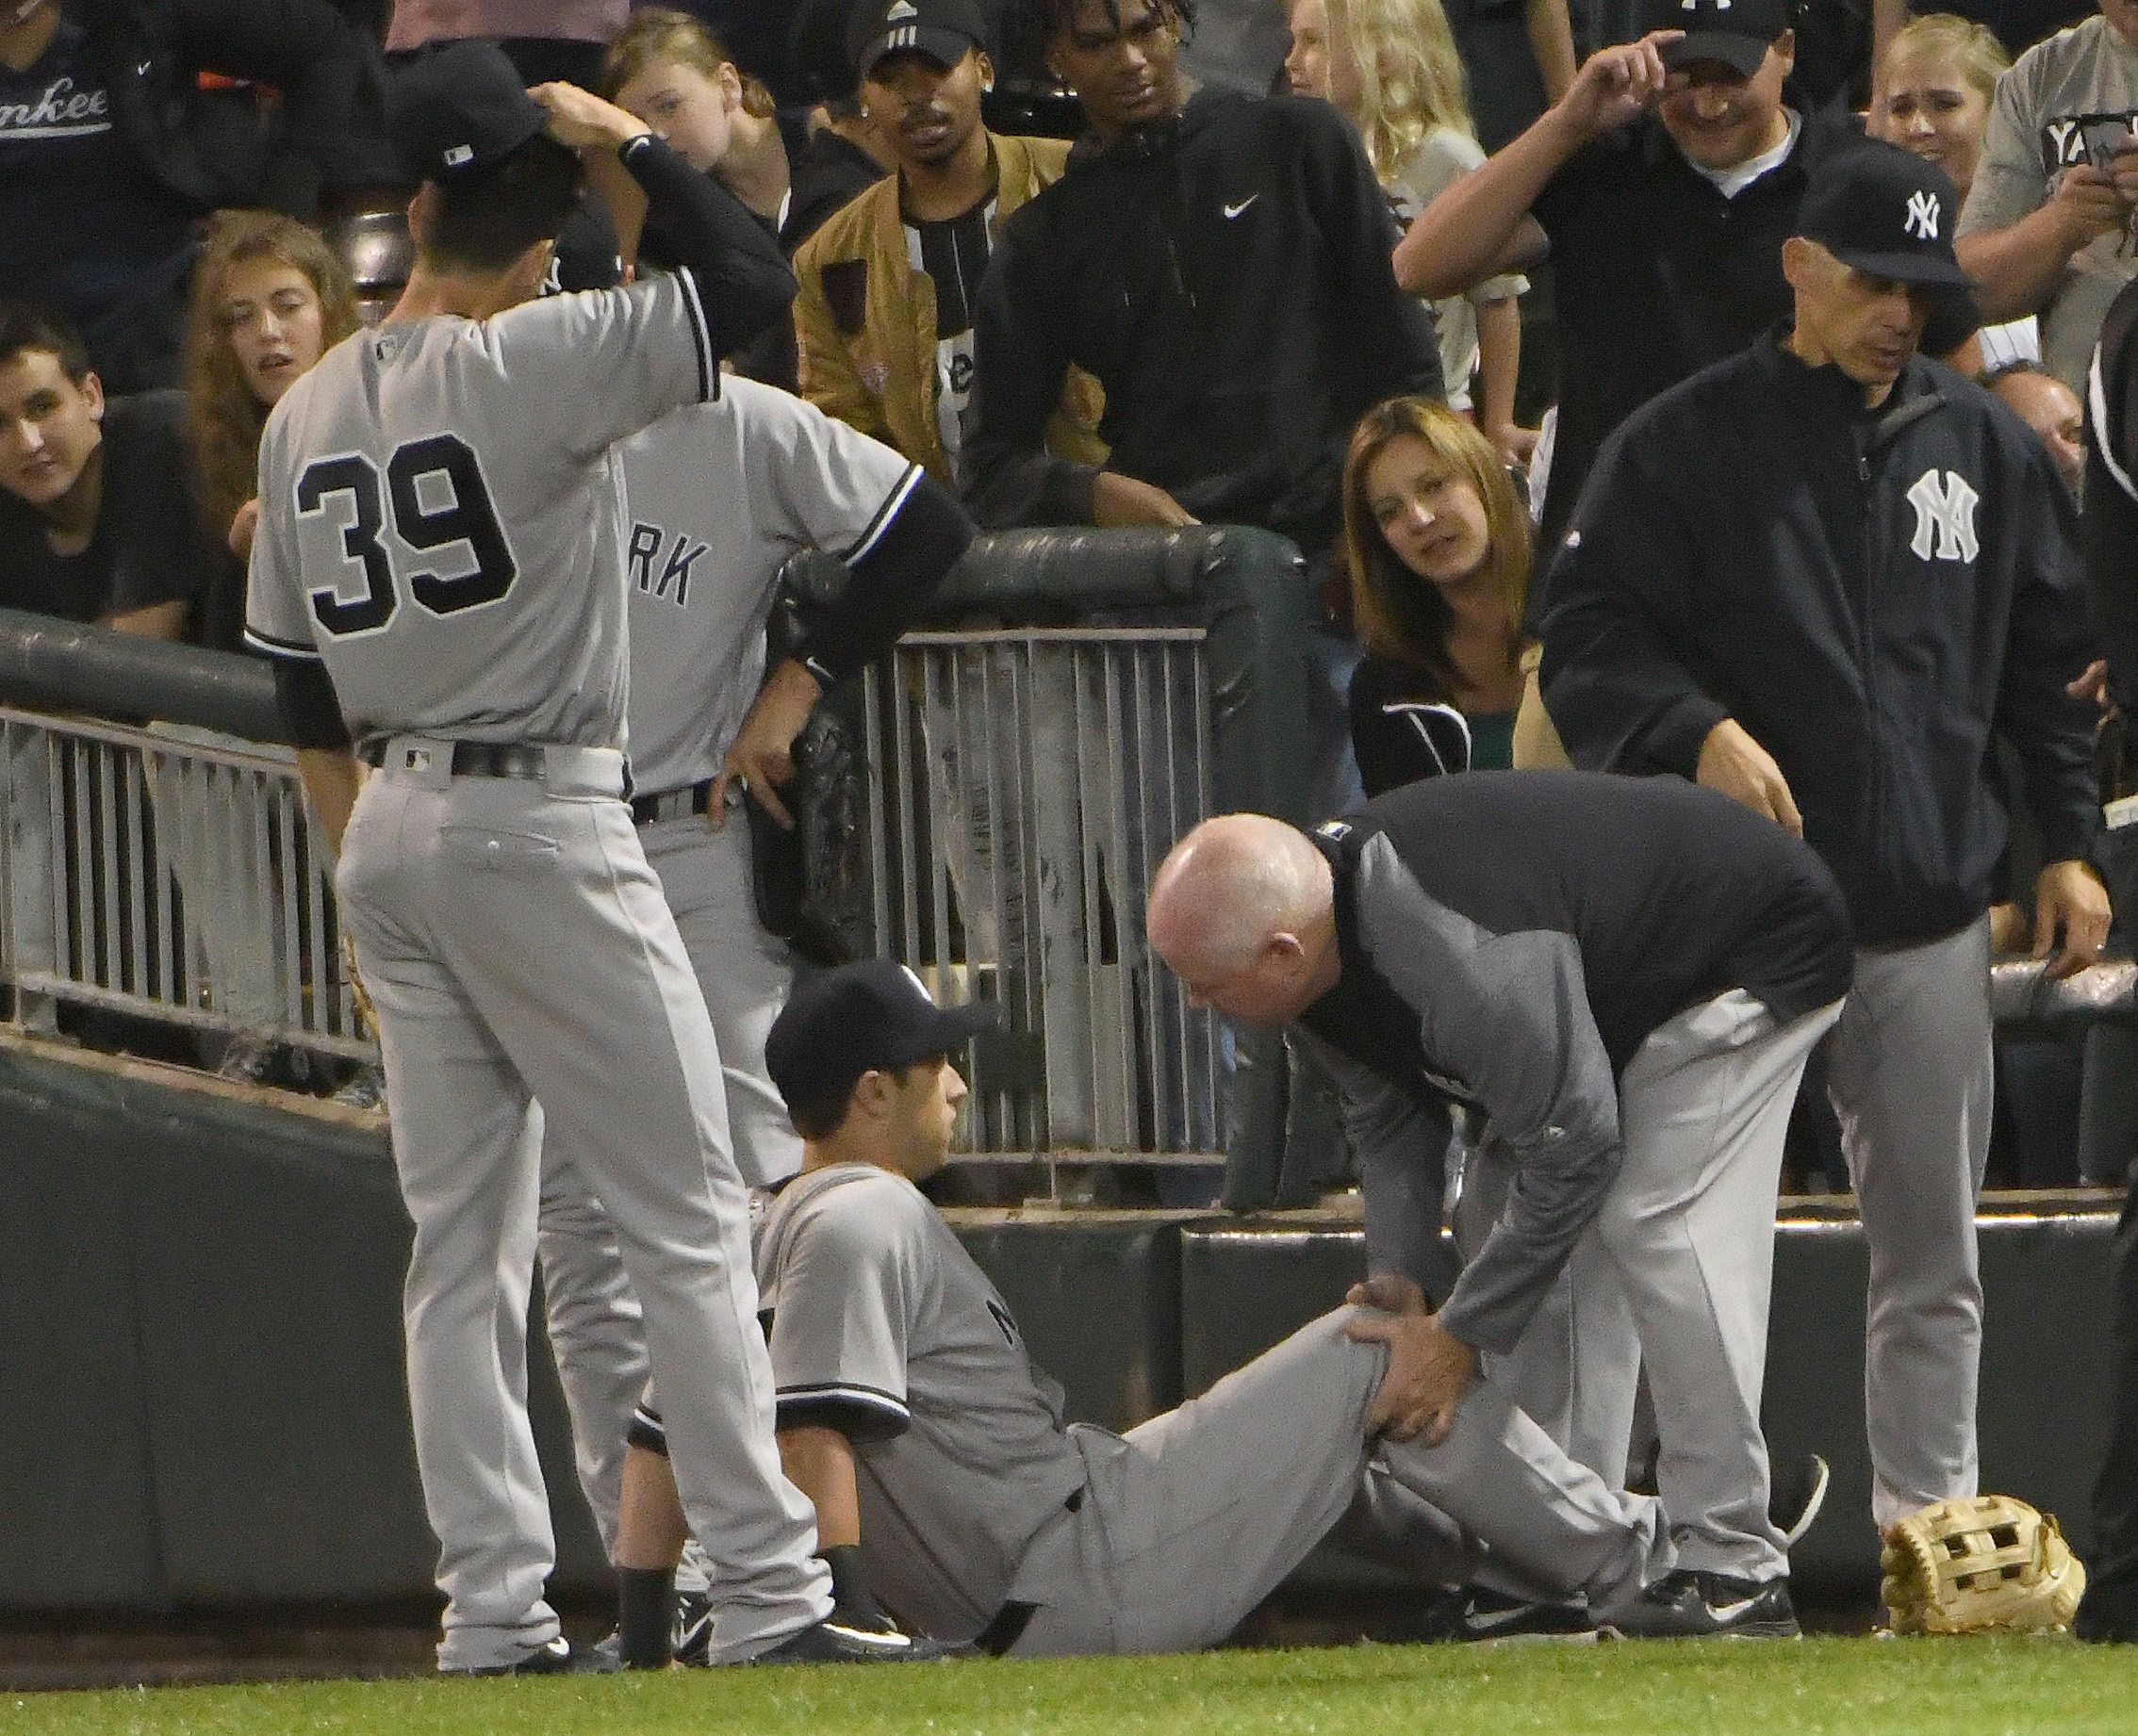 CHICAGO, IL - JUNE 29: Dustin Fowler (on the ground) of the New York Yankees sits on the ground as the trainer looks at his leg after trying to catch a foul ball hit by Jose Abreu (not Pictured) of the Chicago White Sox. Fowler had to leave the game and was taken off the field on a cart, on June 29, 2017 at Guaranteed Rate Field  in Chicago, Illinois. (Photo by David Banks/Getty Images)